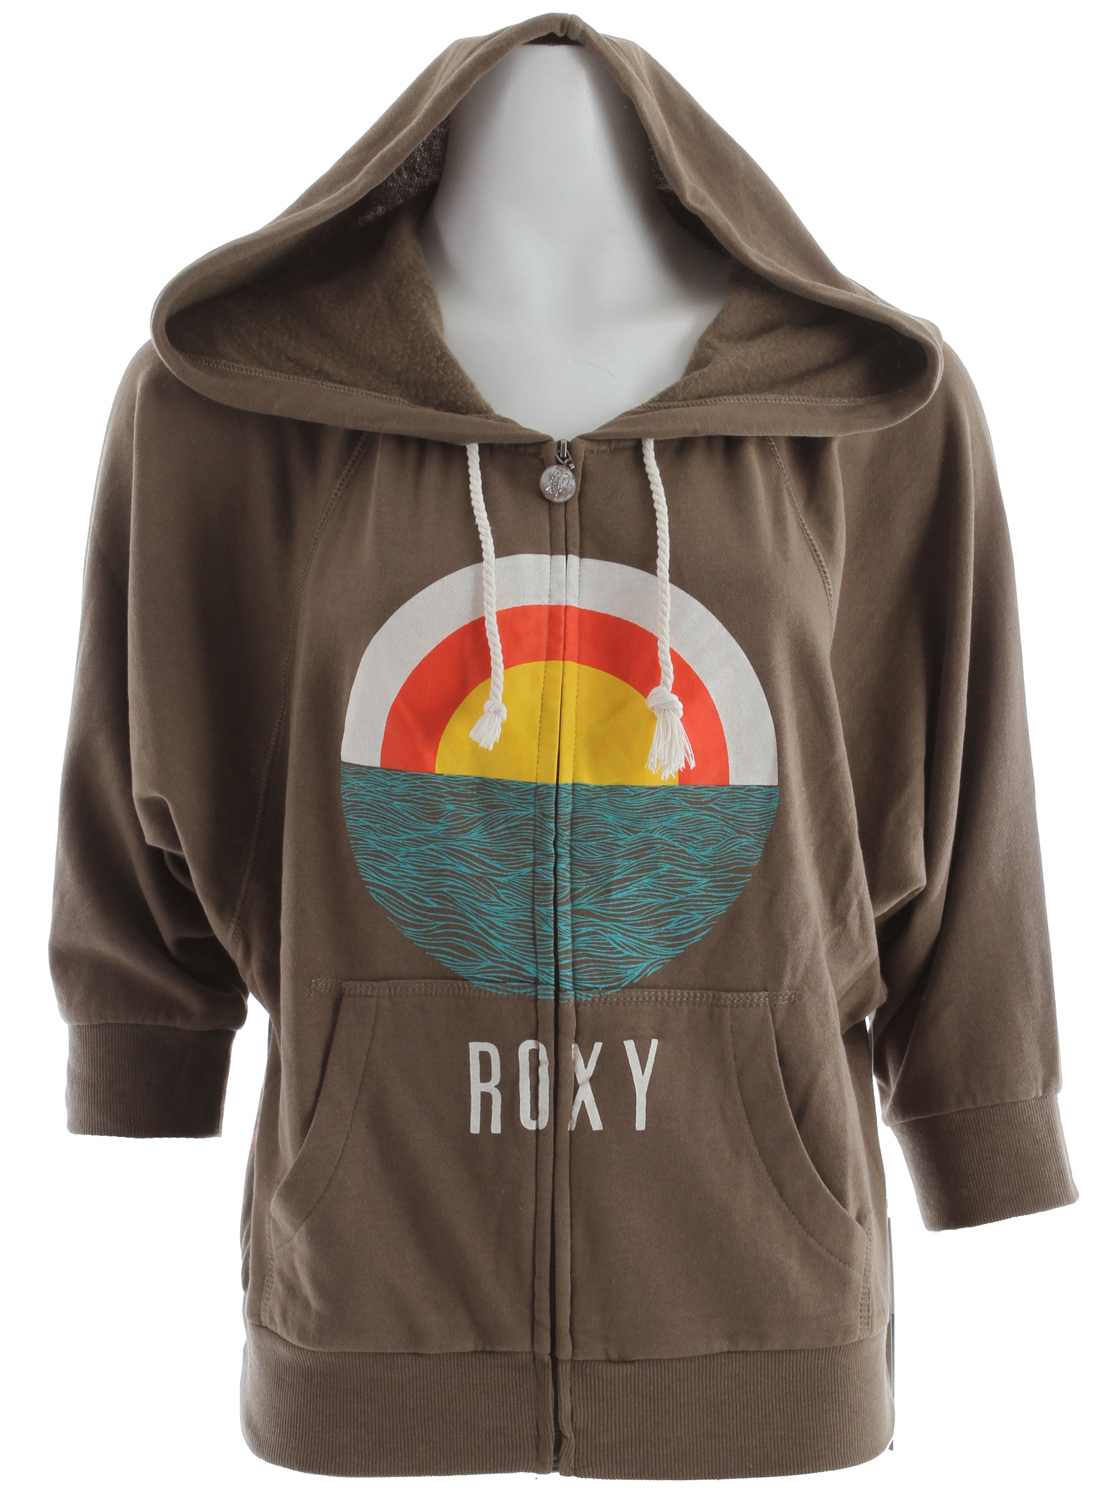 "Surf Key Features of the Roxy Harmony Hoodie: 60% cotton/40% poly light weight fleece 190gms enzyme washed Dolman zip up hooded fleece 24"" hps - $34.95"